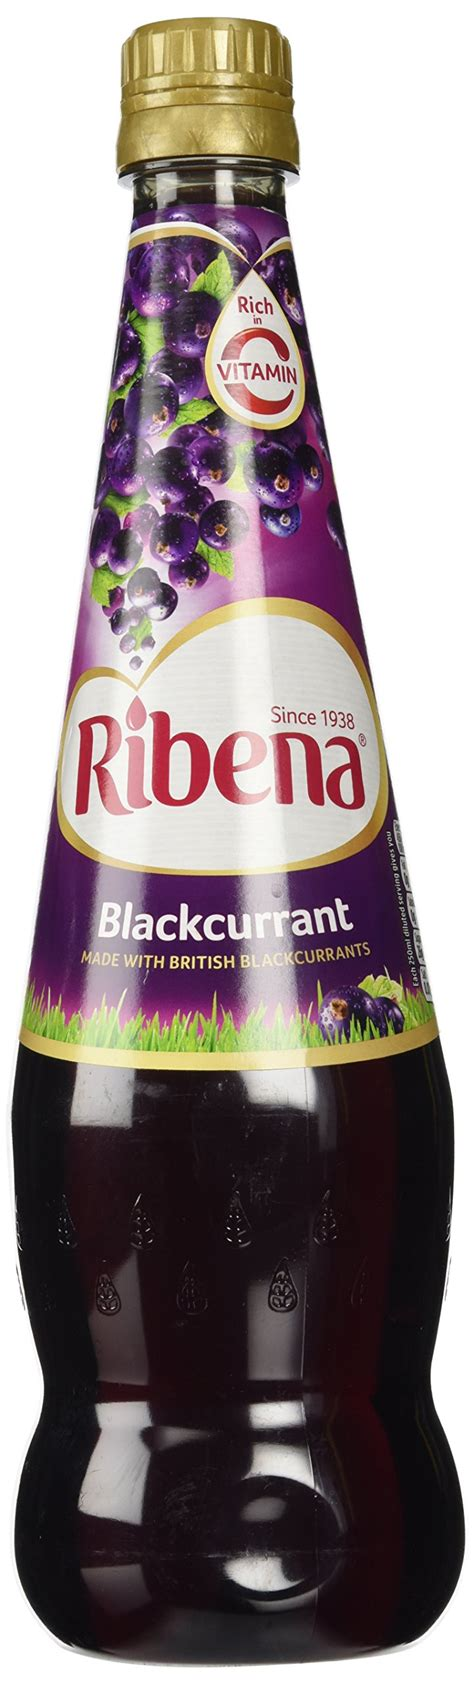 Ribena Blackcurrant 1 Liter ribena blackcurrant 1 5 liter grocery